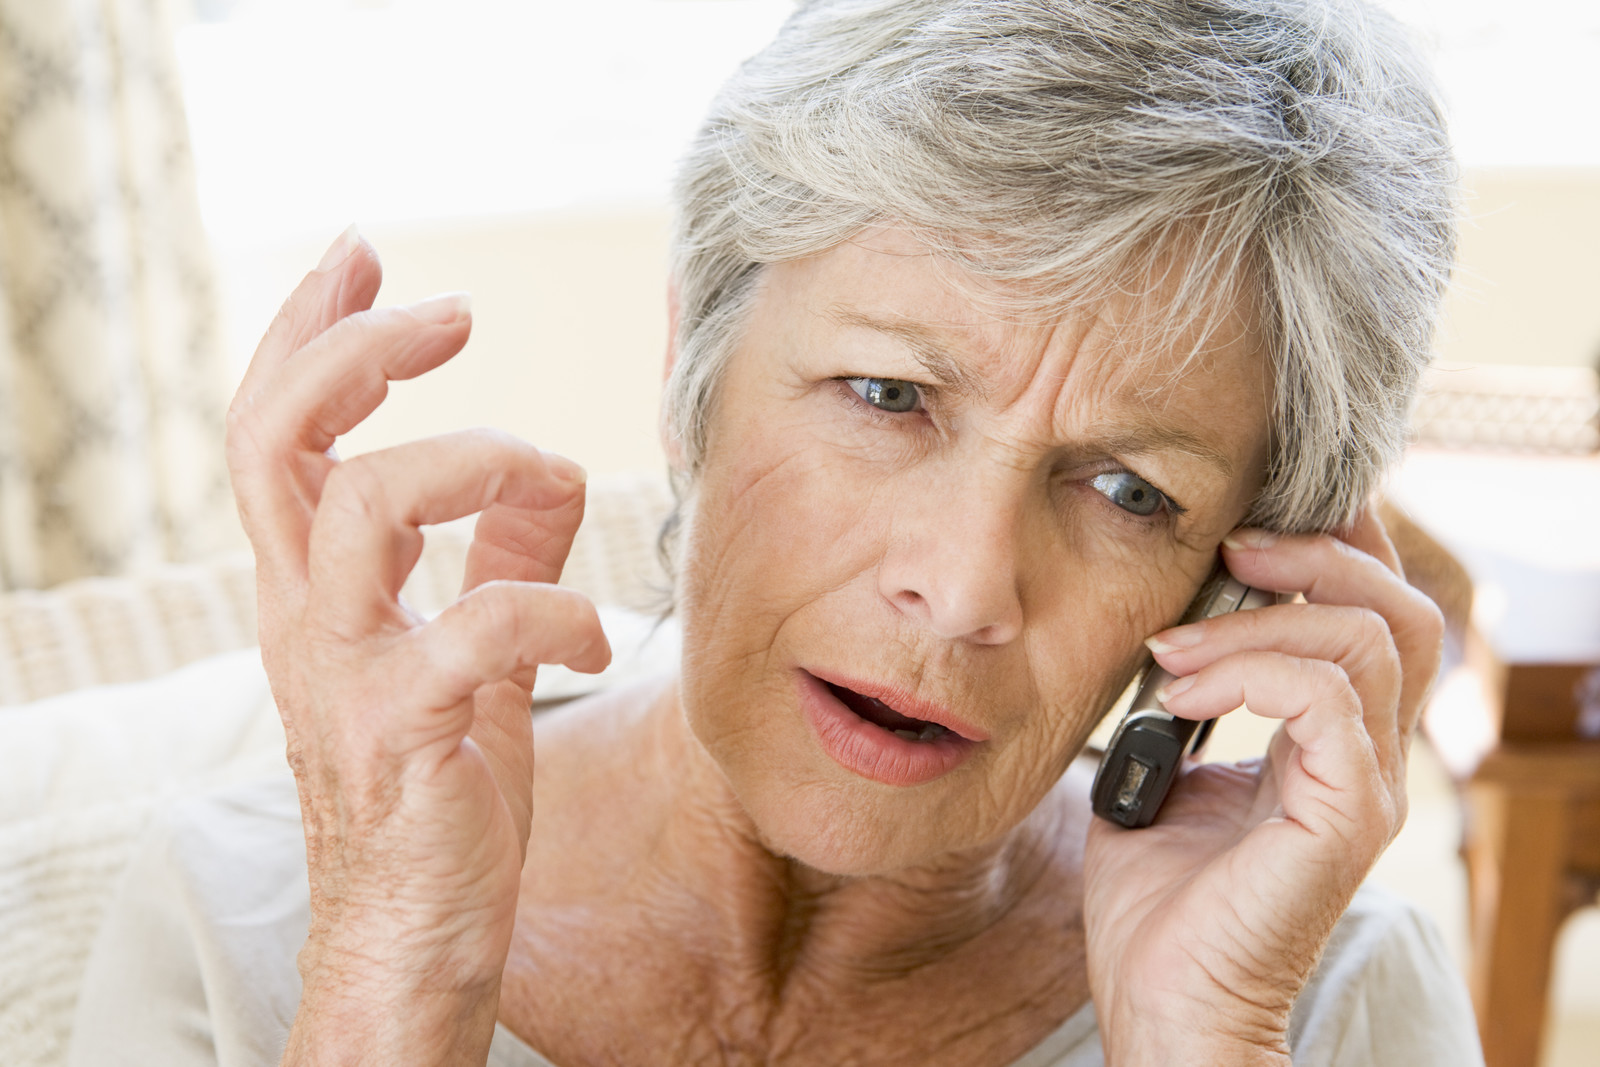 Senior woman on cell phone looking upset - representing a robocall for a fake past due utility bill